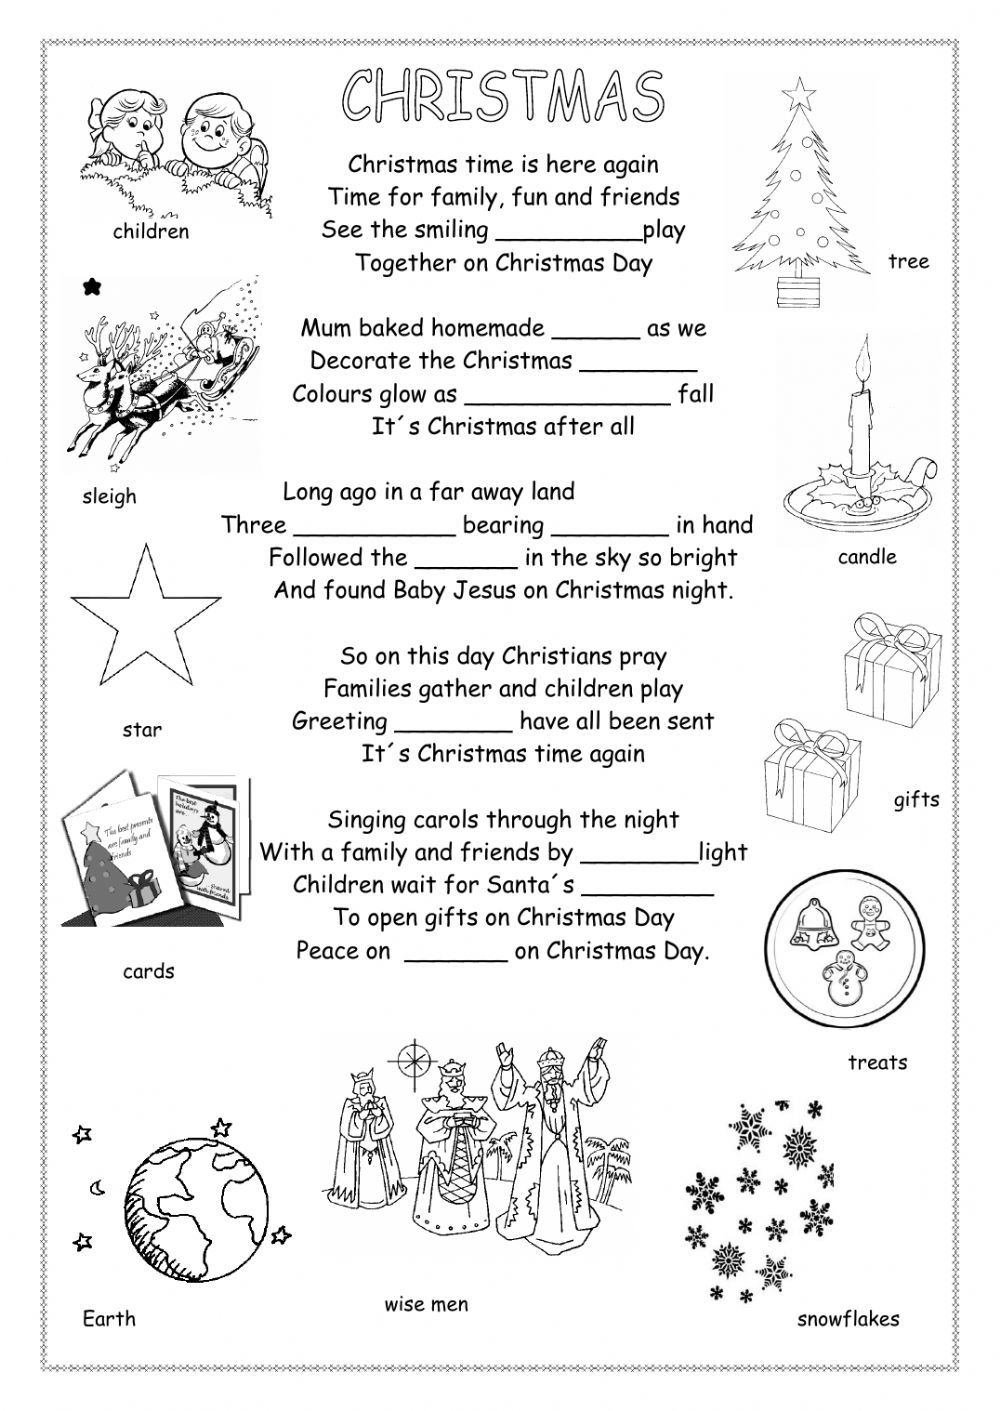 Christmas Interactive And Downloadable Worksheet. You Can Do